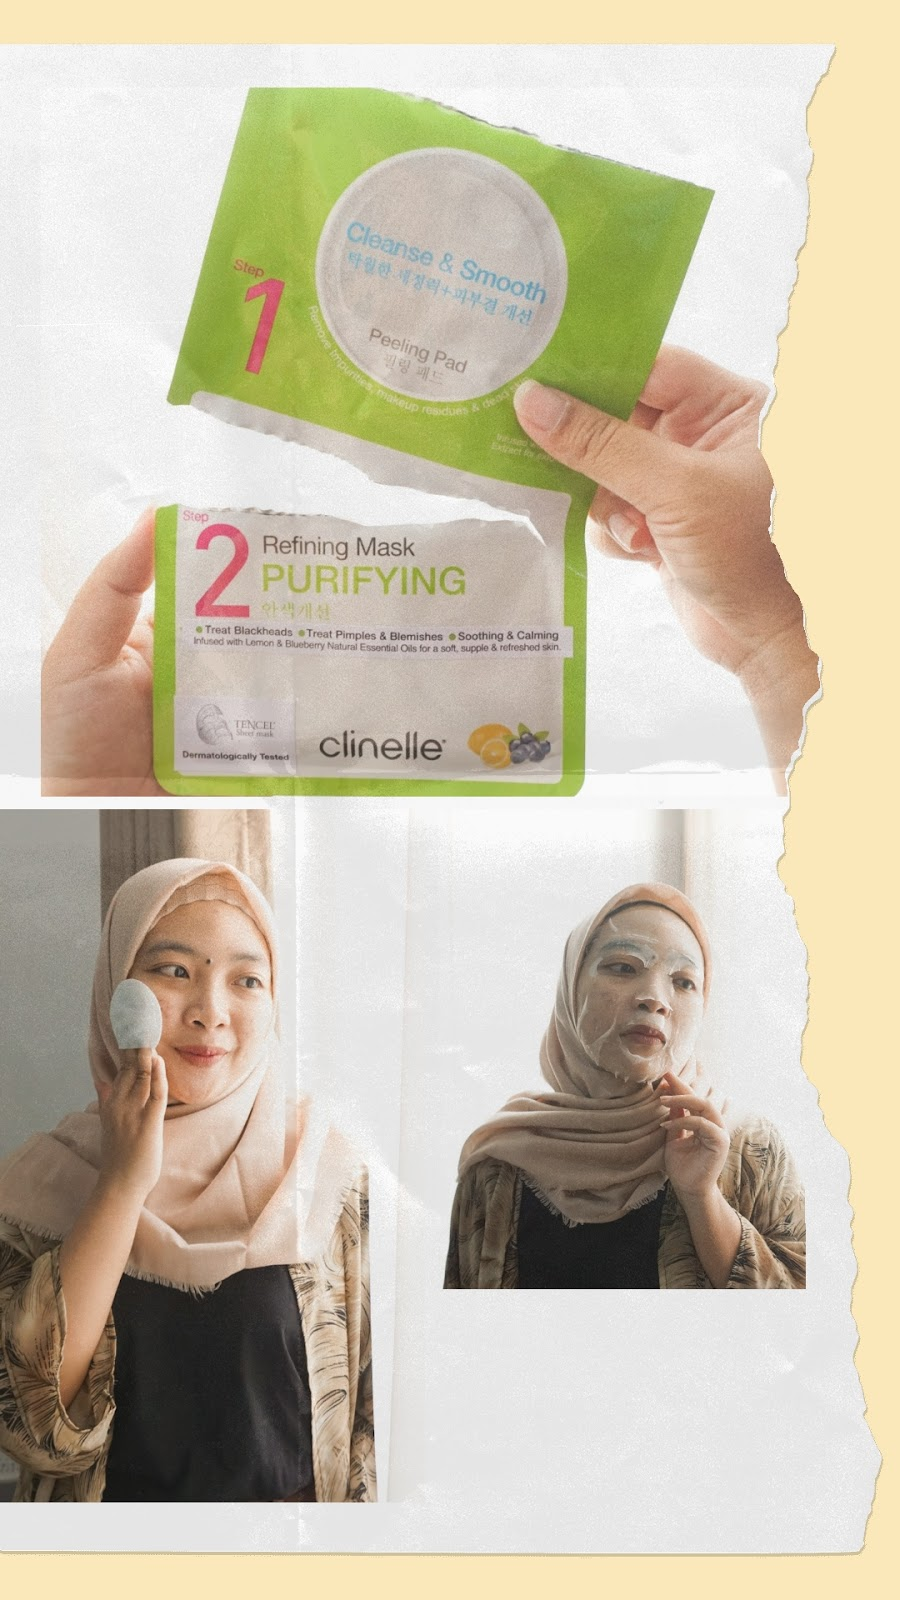 clinelle peeling pad & refining mask purifying review